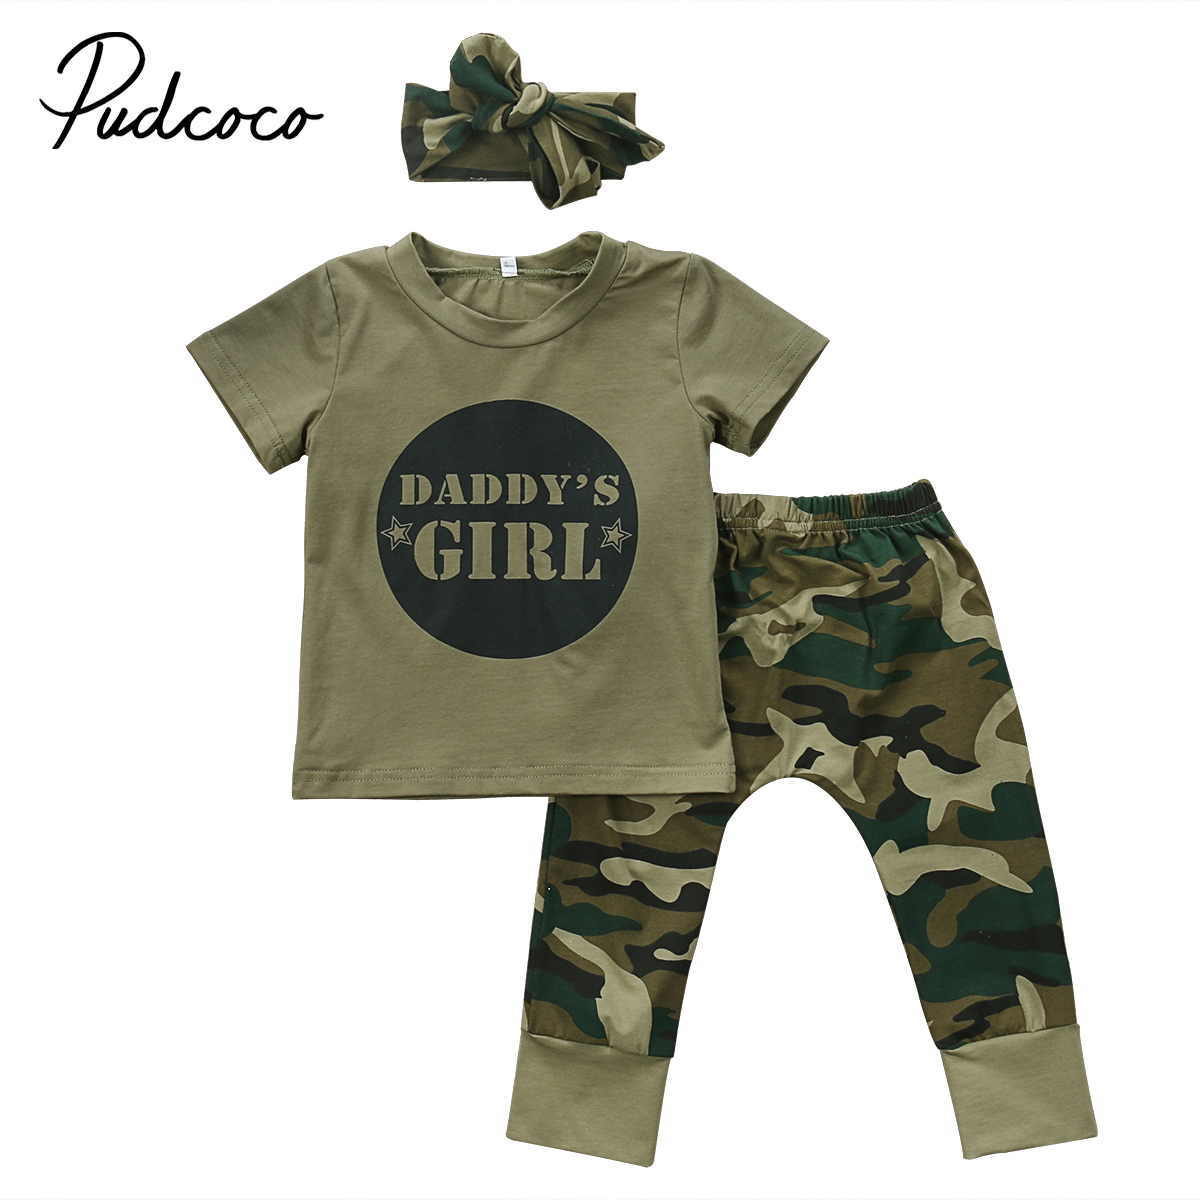 Summer Newborn Baby Boy Girls Camouflage T-shirt Tops+Pants Outfits Set Clothes Army Green Children Letters Print Clothing 0-24M футболка поло